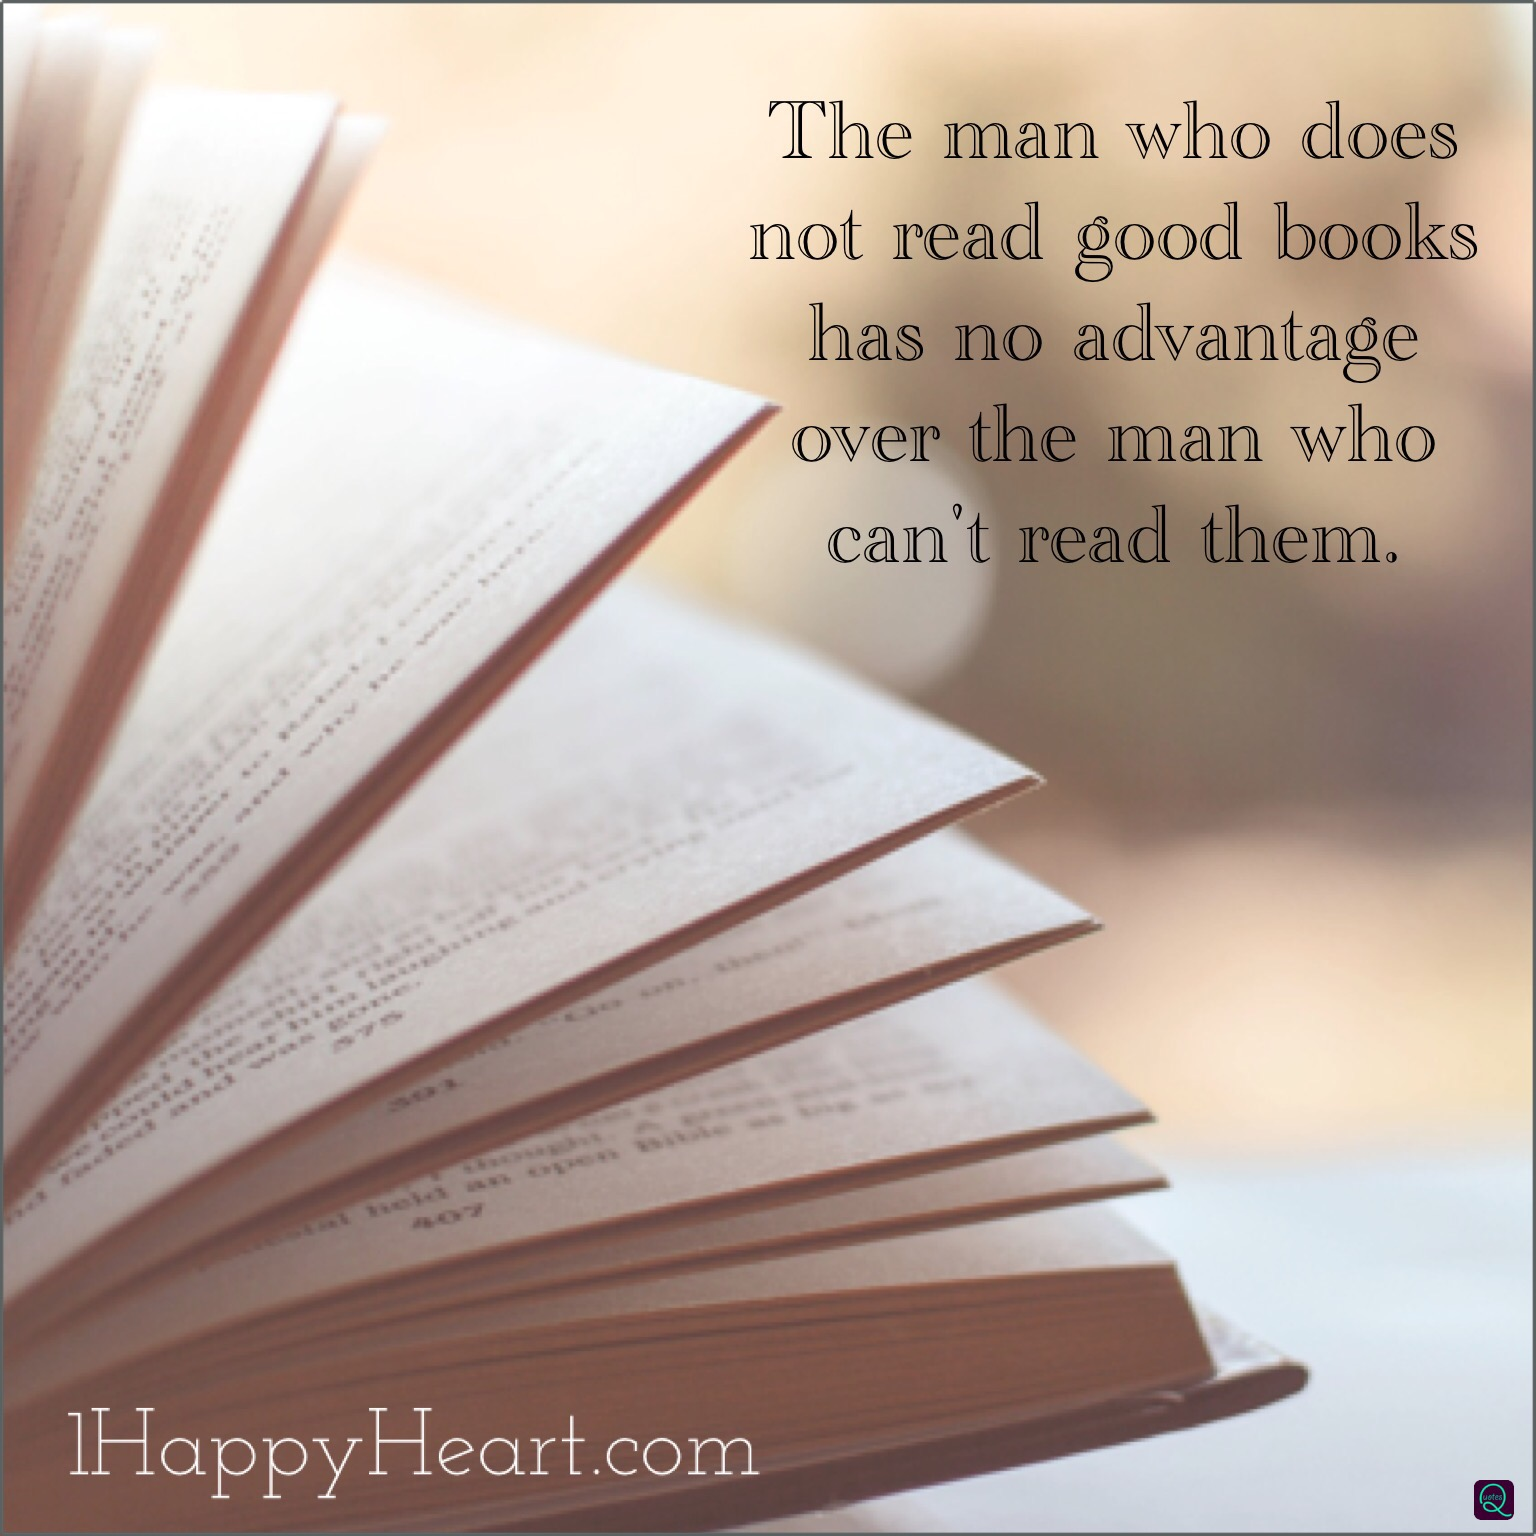 The man who does not read books